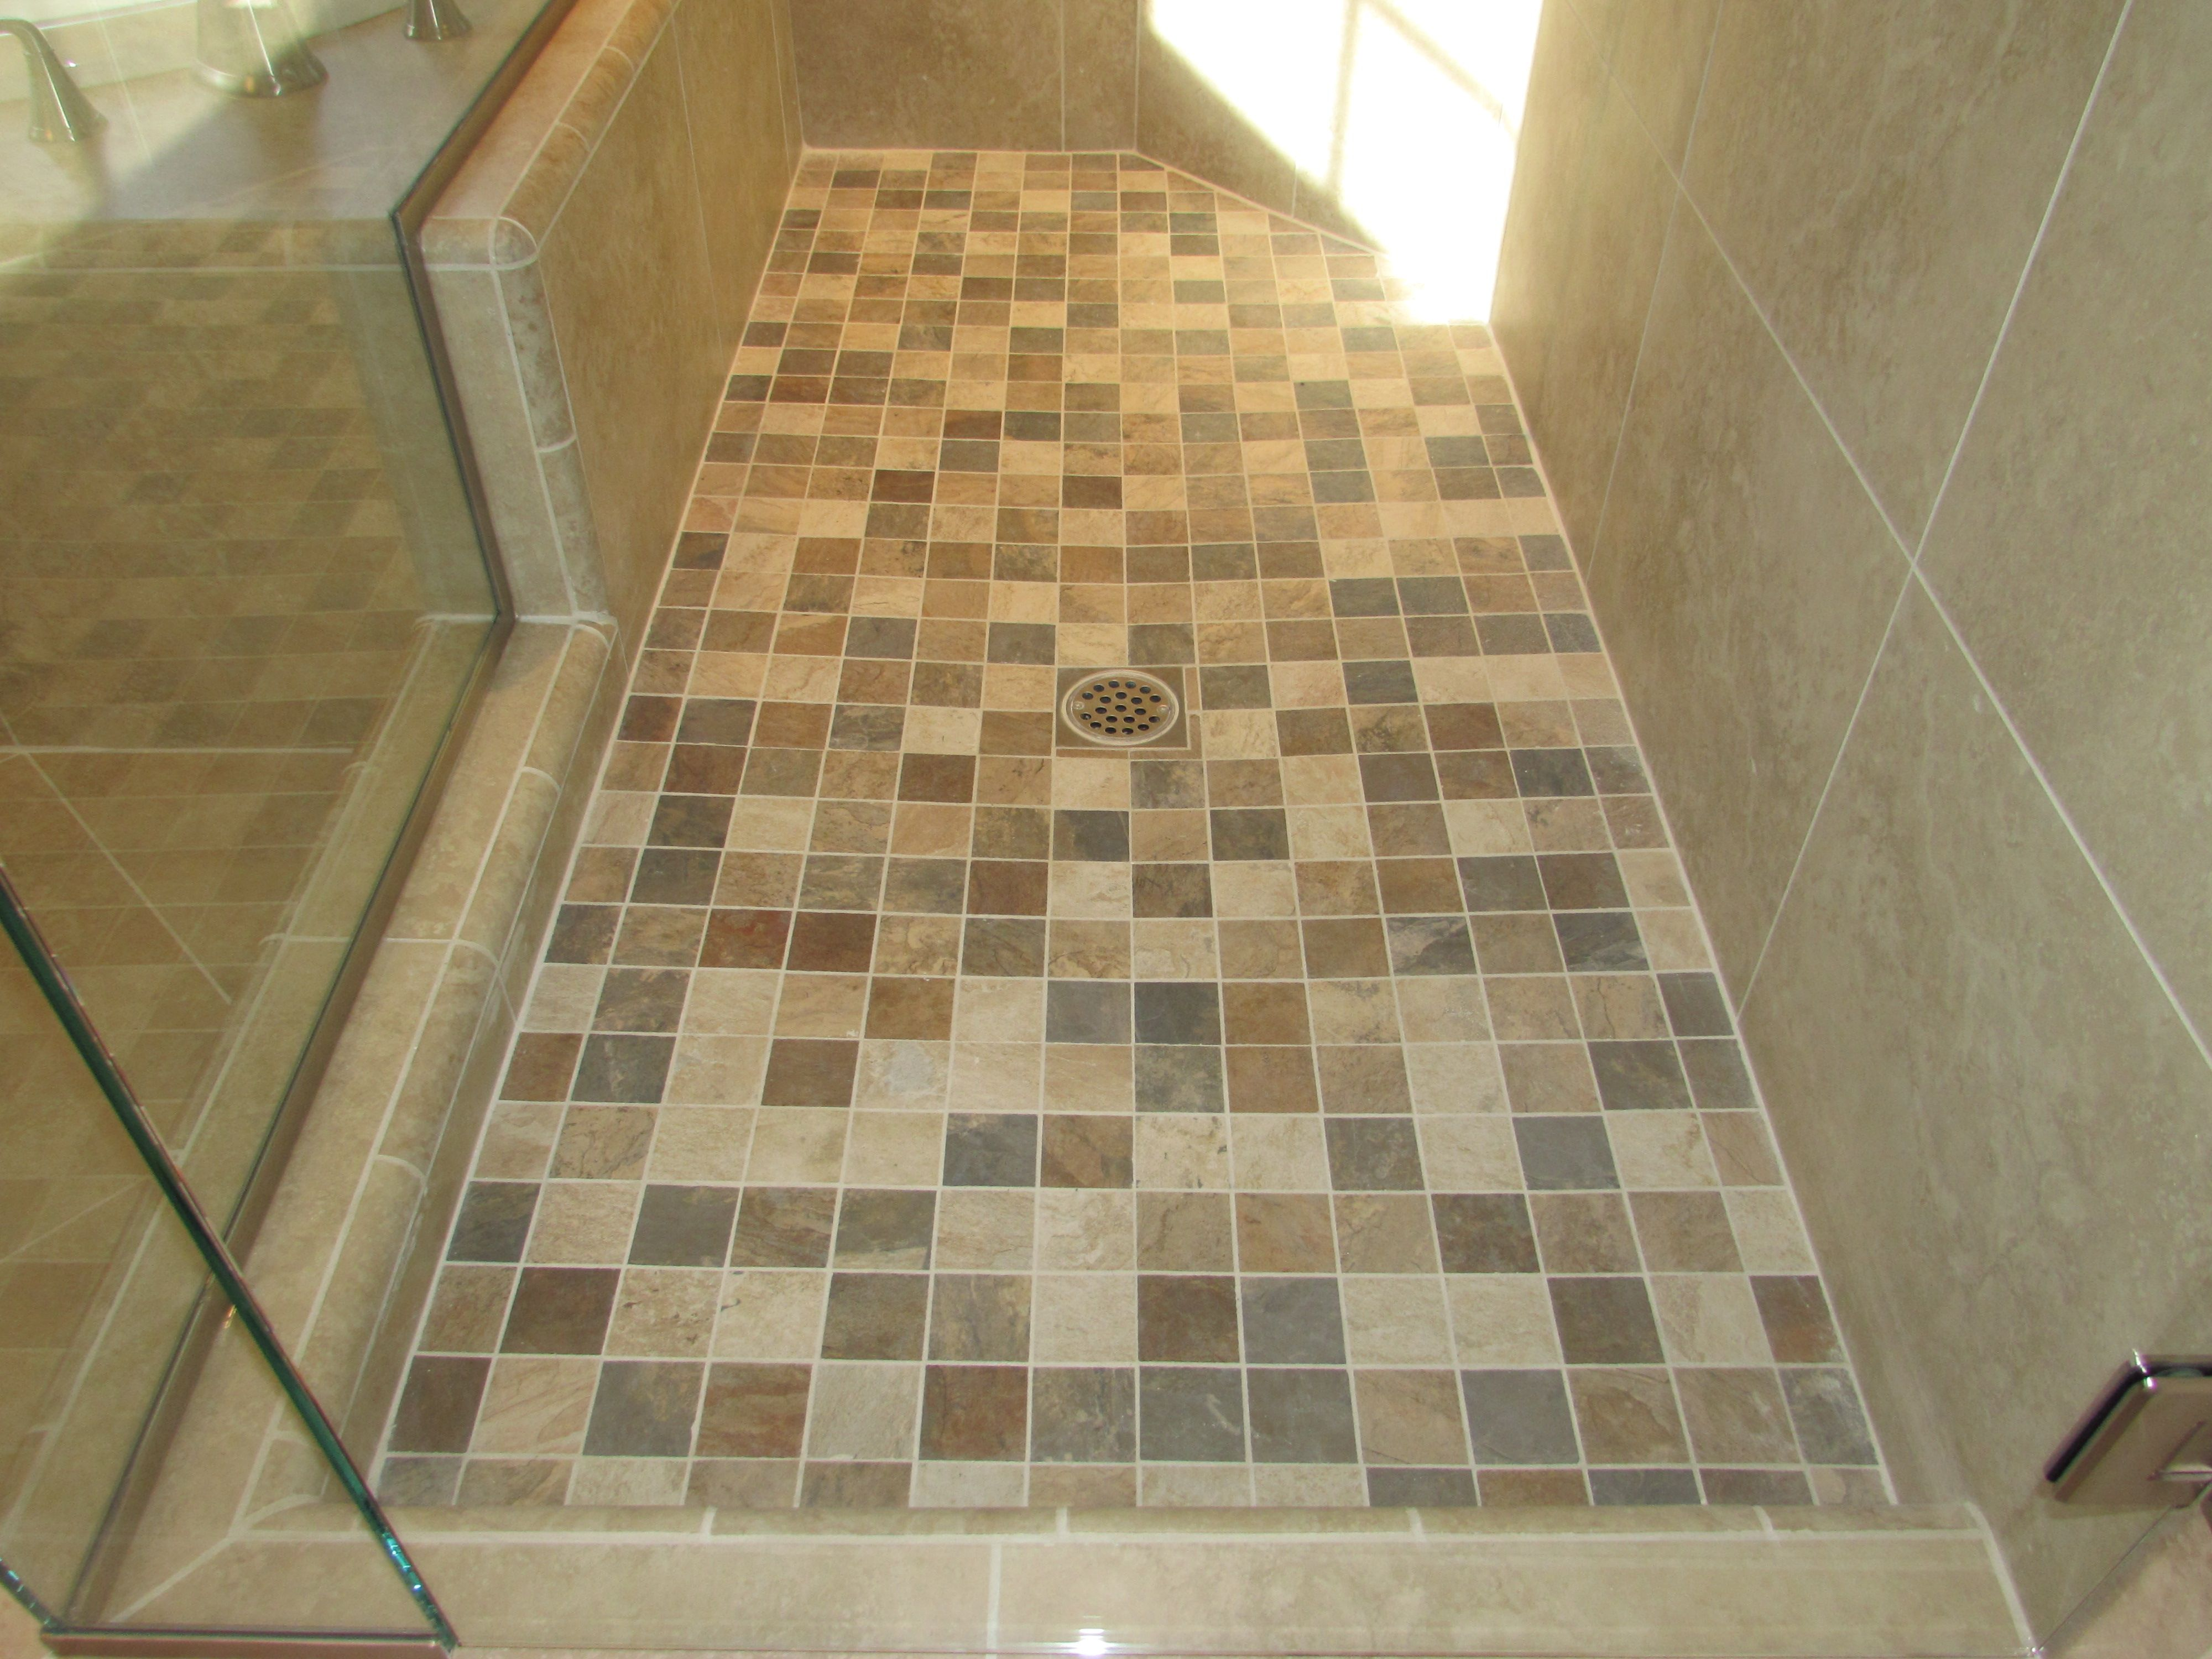 This Is A 2x2 Porcelain Mosaic Tile On A Shower Pan Which Is Multi Colored To Look Like Slate Porcelain Mosaic Tile Shower Pan Remodeling Projects